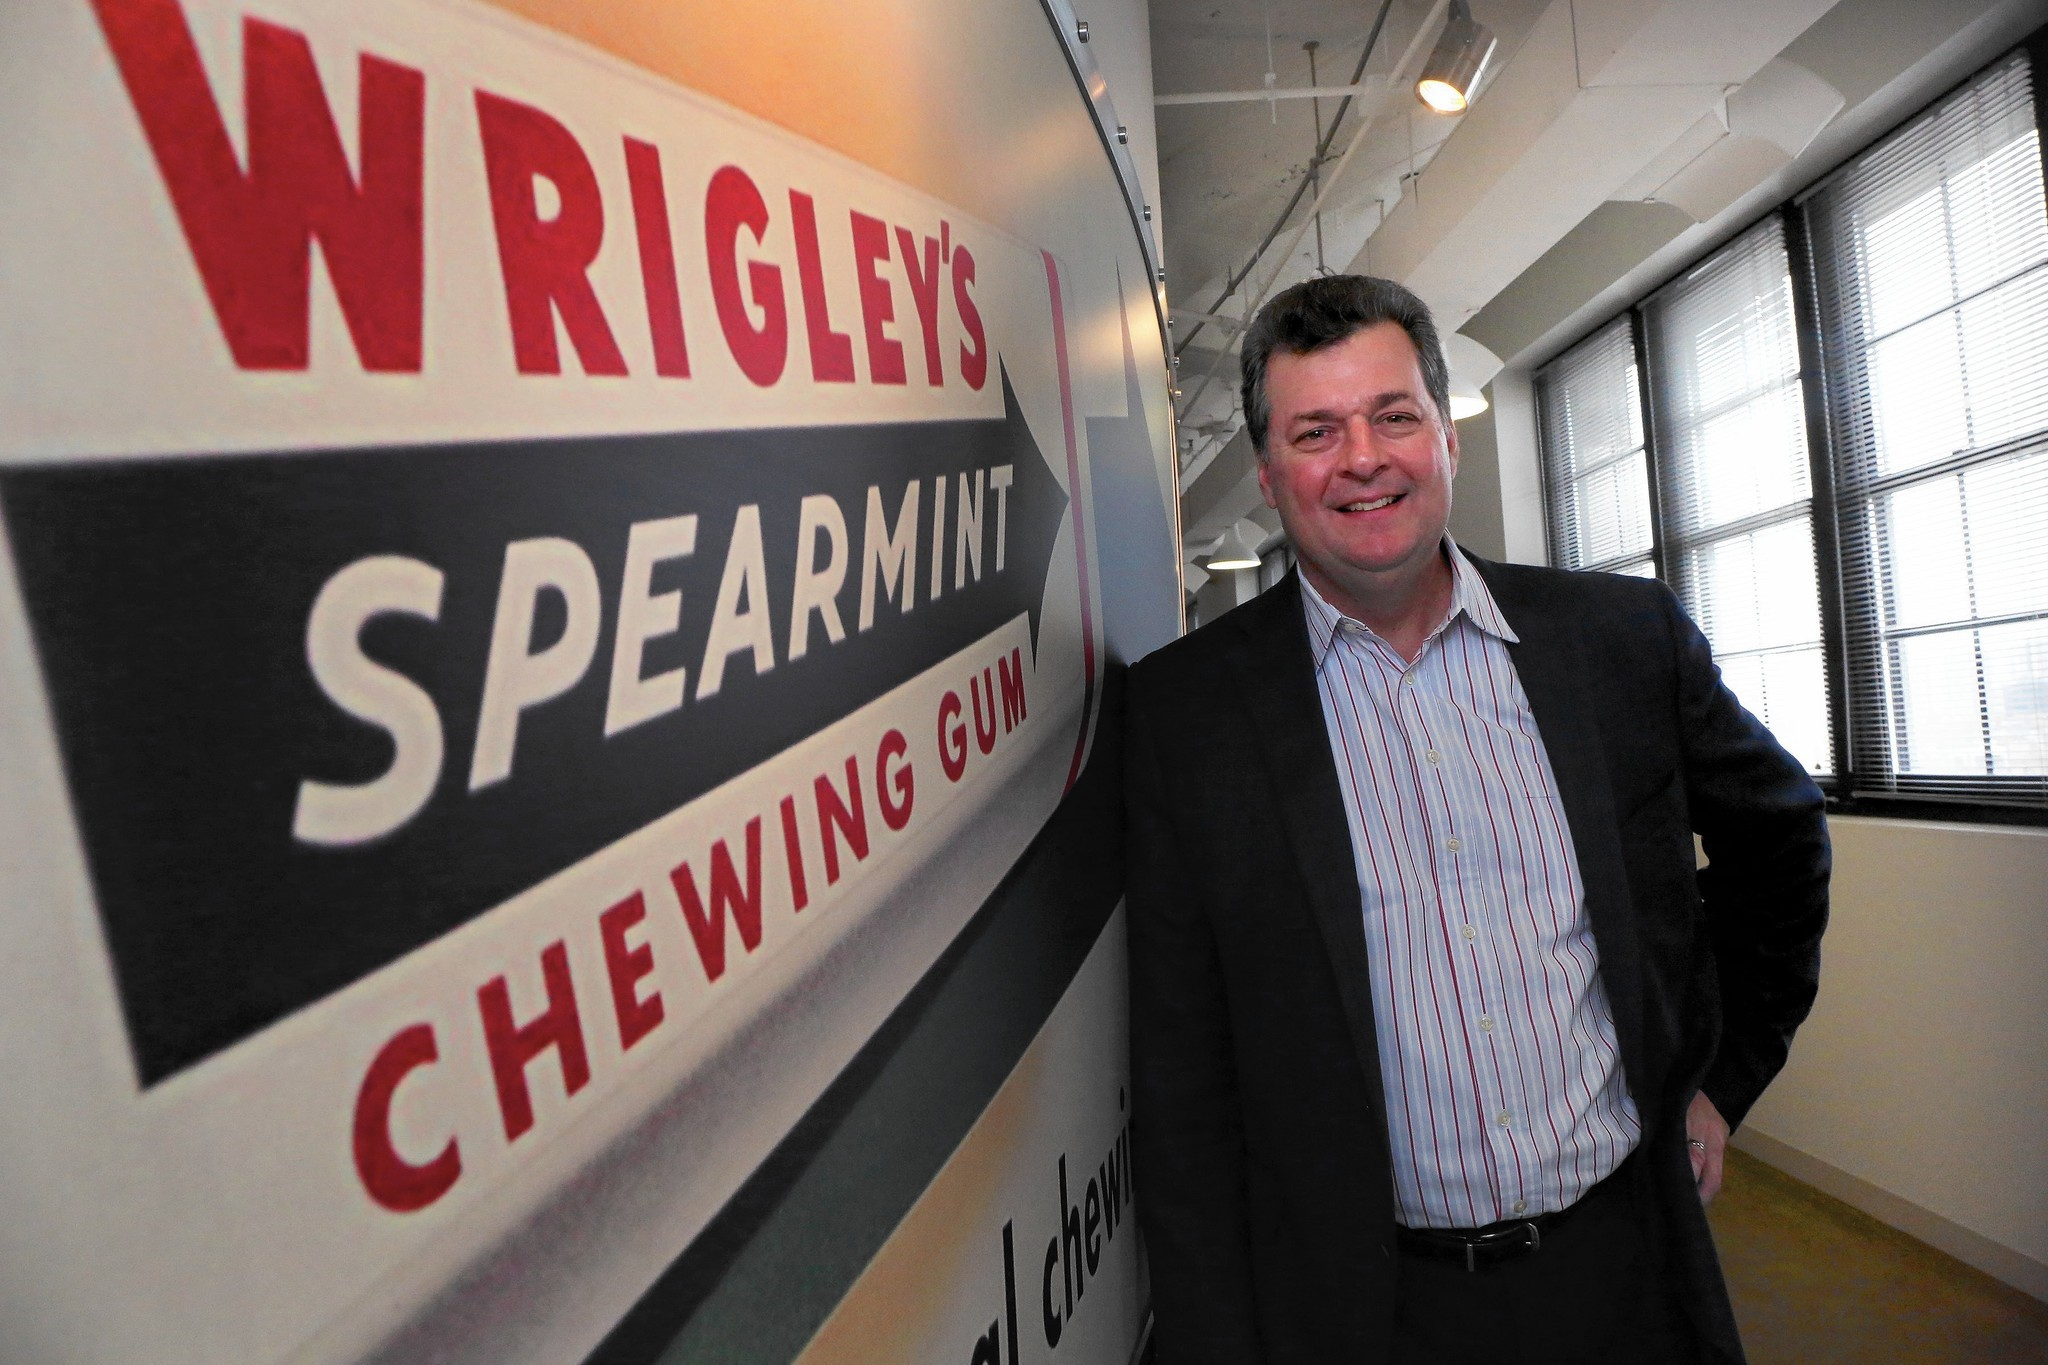 Wrigley's executive wants to add gum, mints to your online shopping list